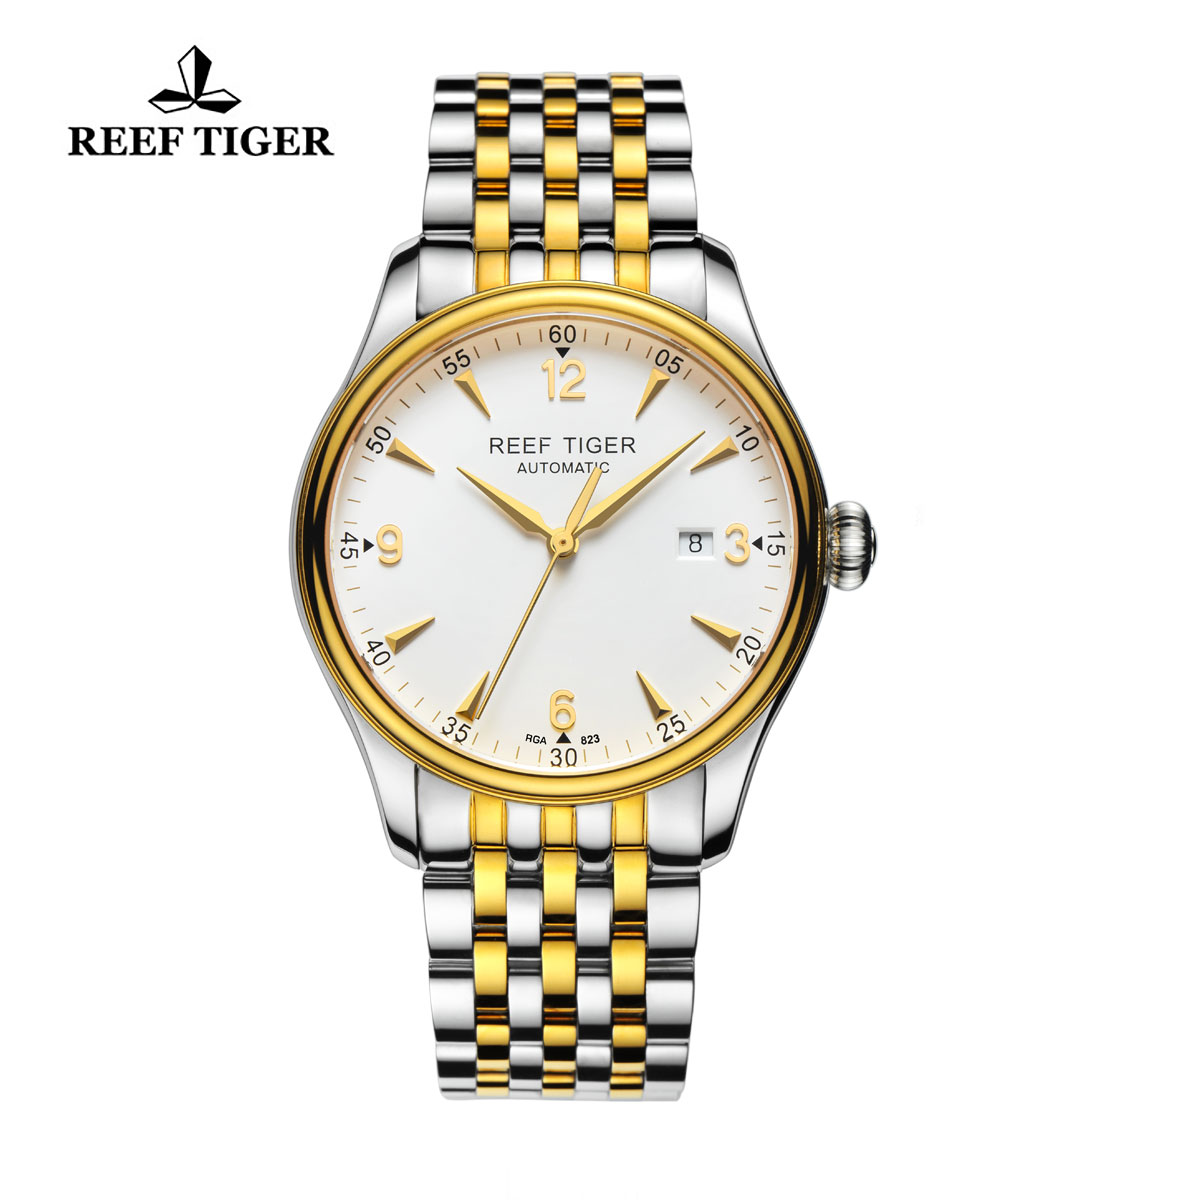 Reef Tiger Heritage Dress Automatic Watch White Dial Yellow Gold/Steel Case RGA823-TWT